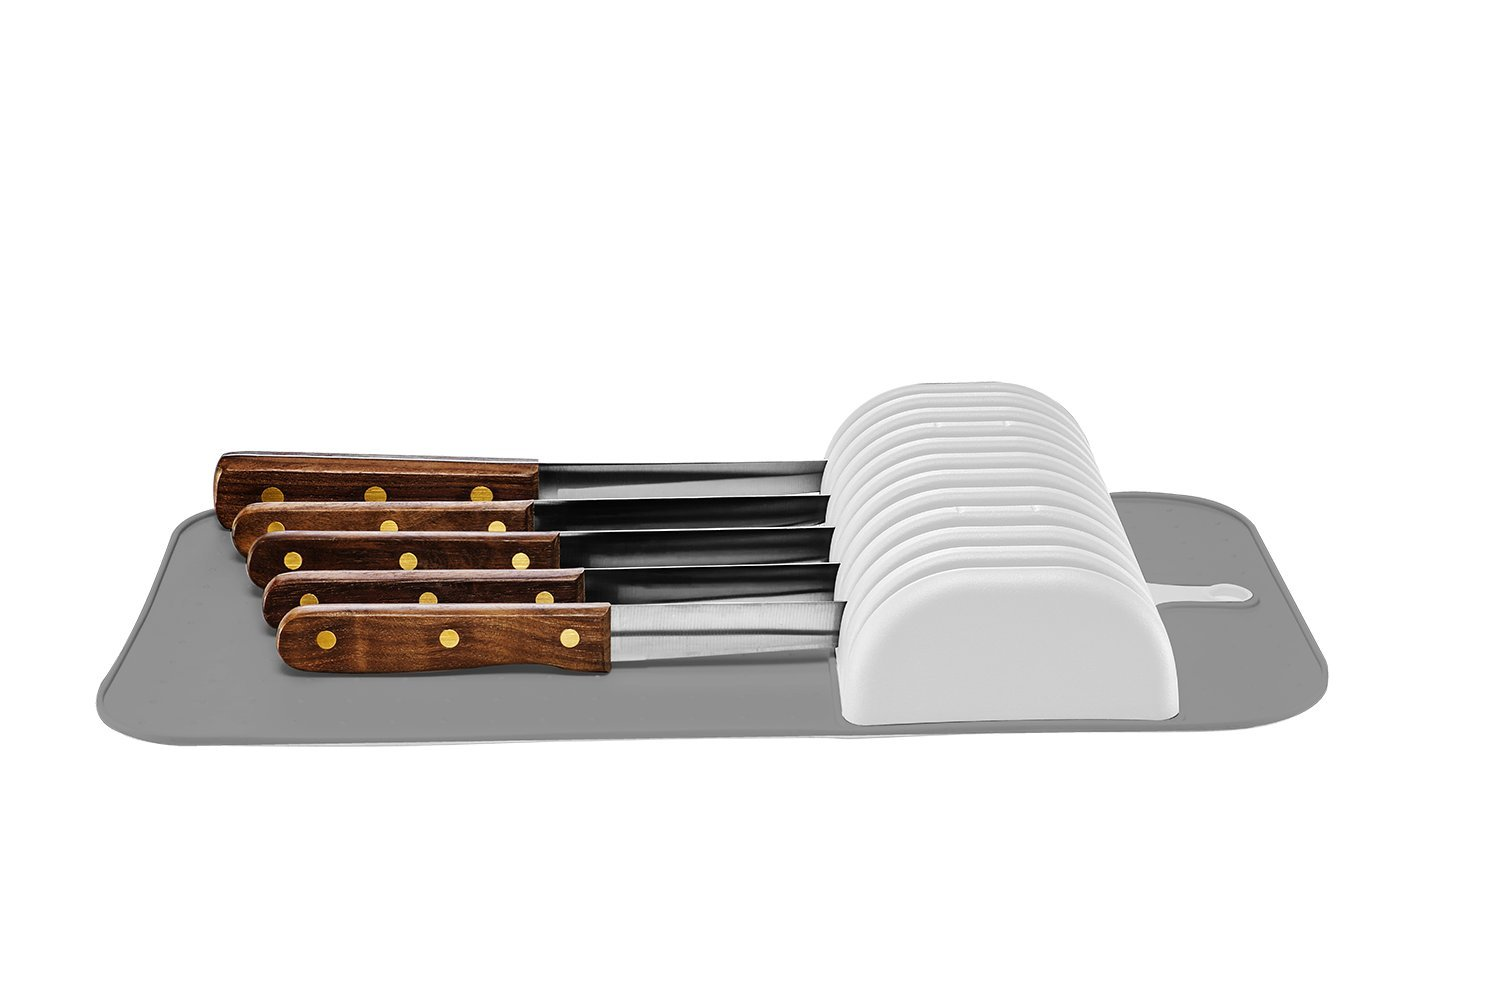 Madesmart - Safe in-Drawer Knife Mat with Soft Grip Slot in Grey Color, Holds up to 11 Knives by Made Smart (Image #2)